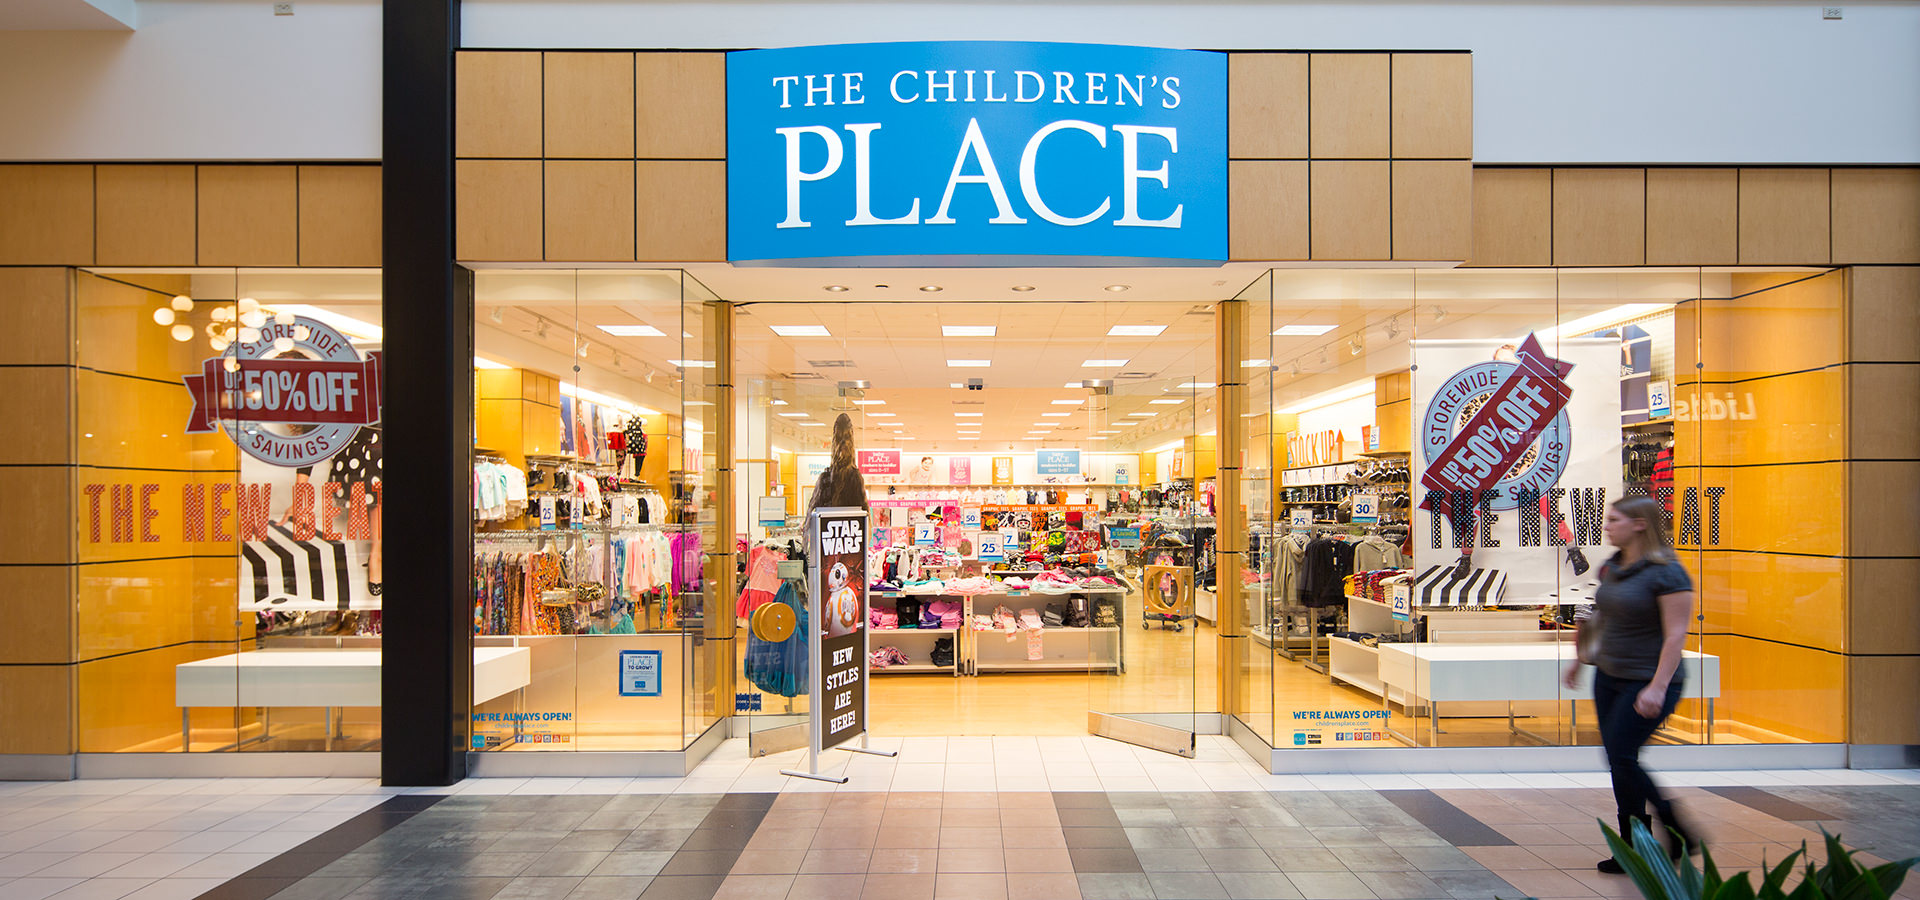 The Children's Place is an online retail store that offers every type of clothing for children or kids. You can find clothing for all seasons and for all ages ranging from newborn to youth sizes.